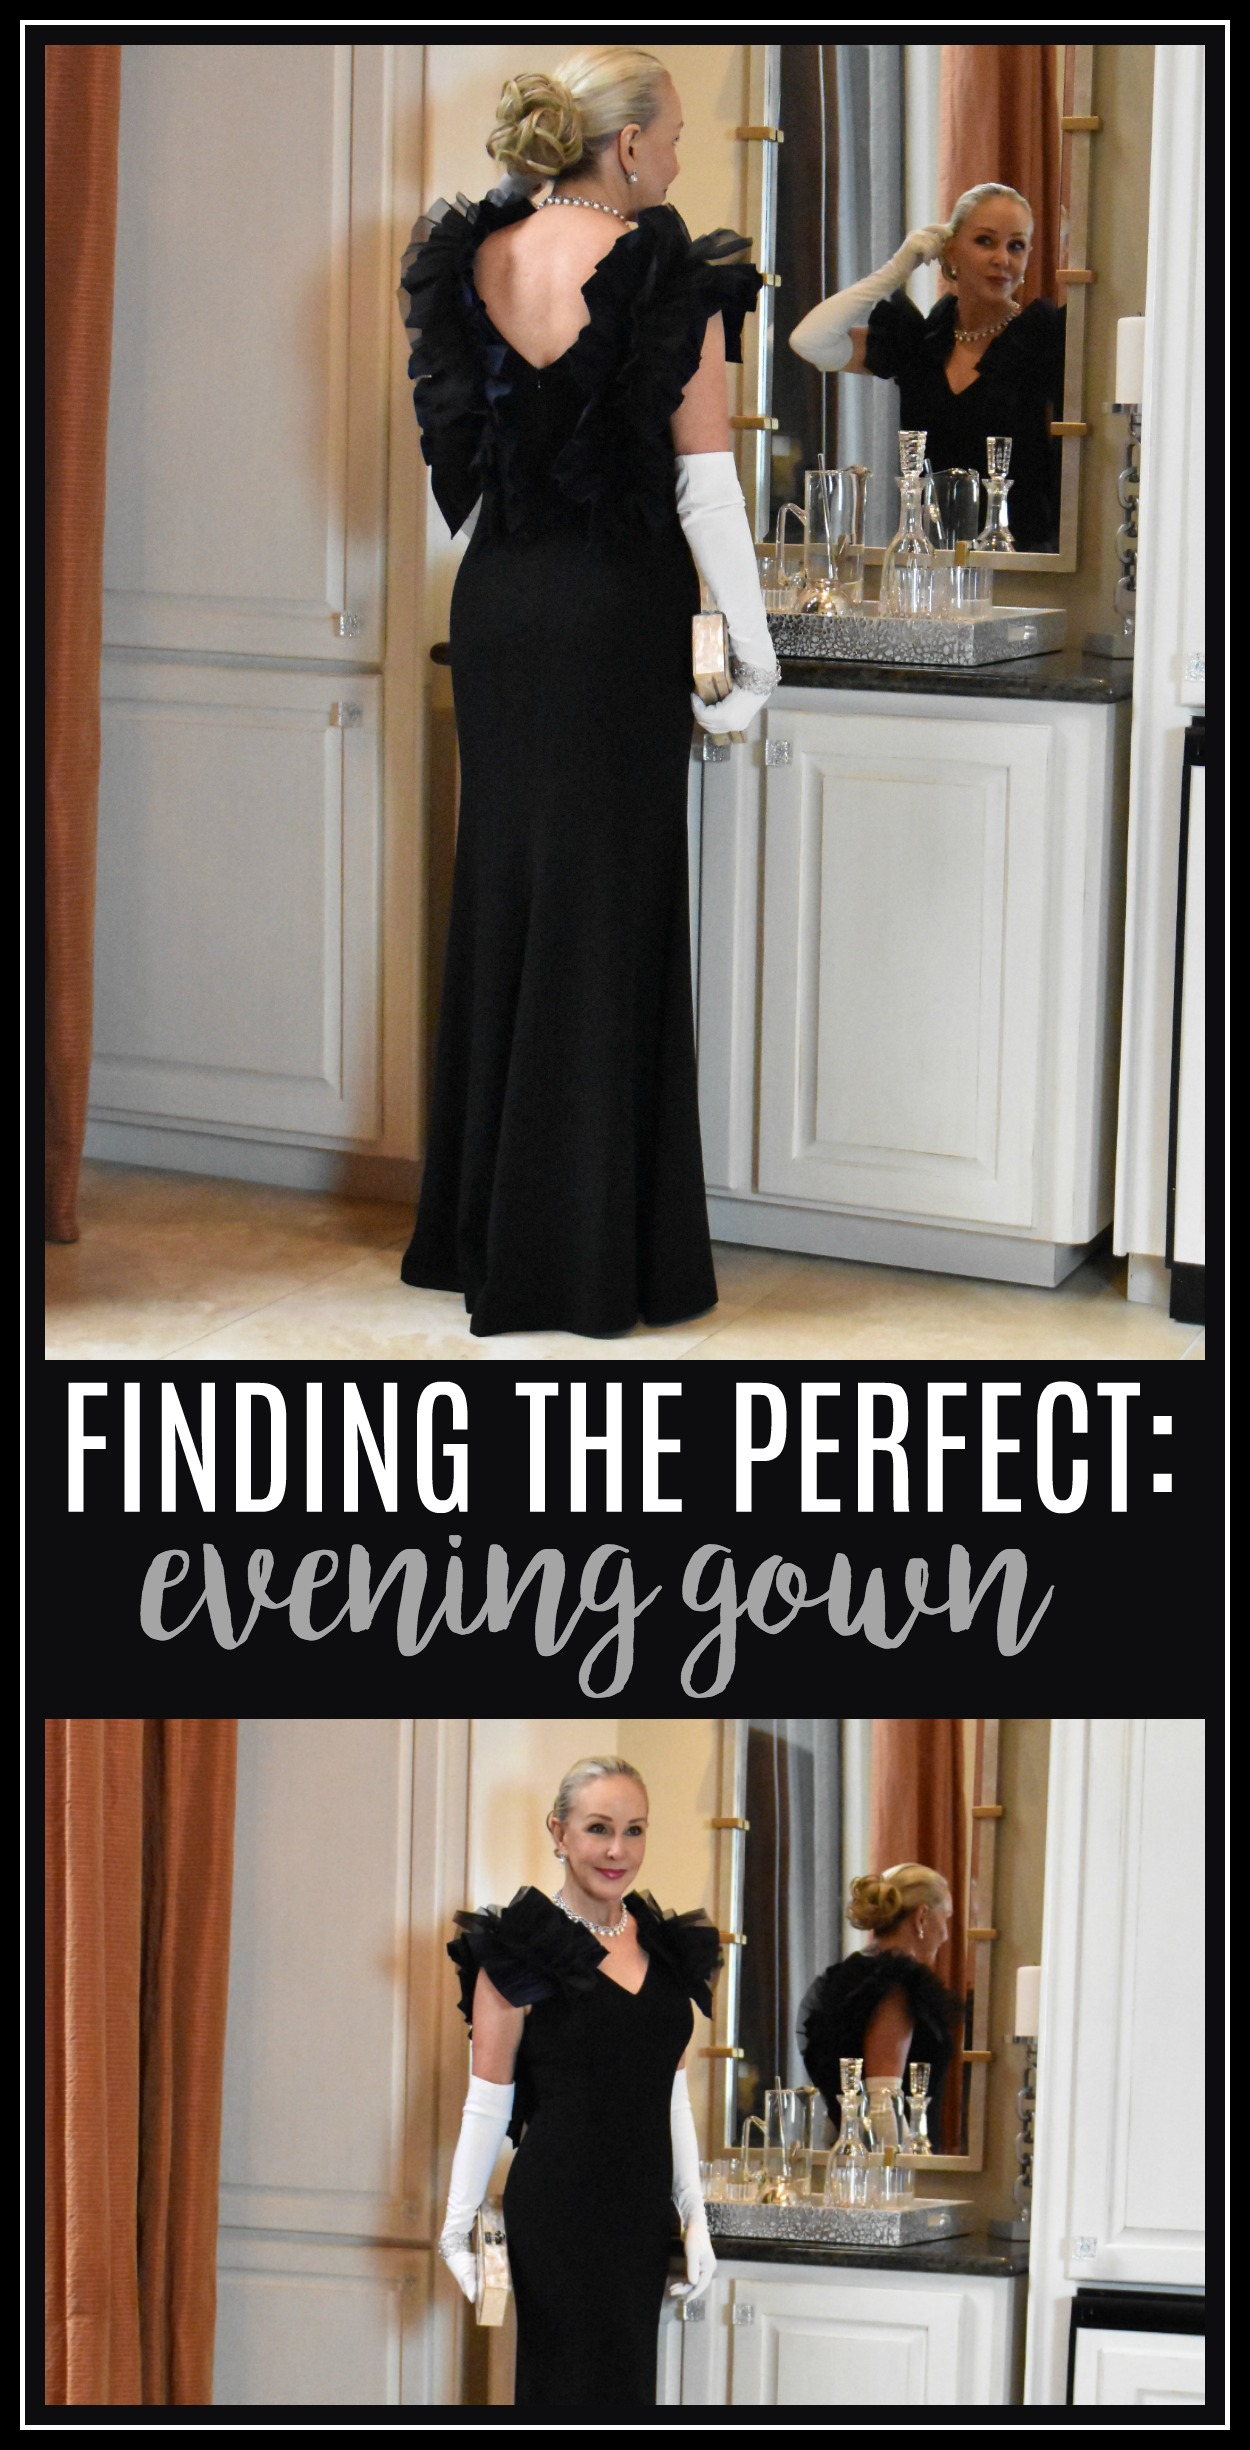 how to find the perfect evening gown, evening gowns, formal dresses, special occasion wear